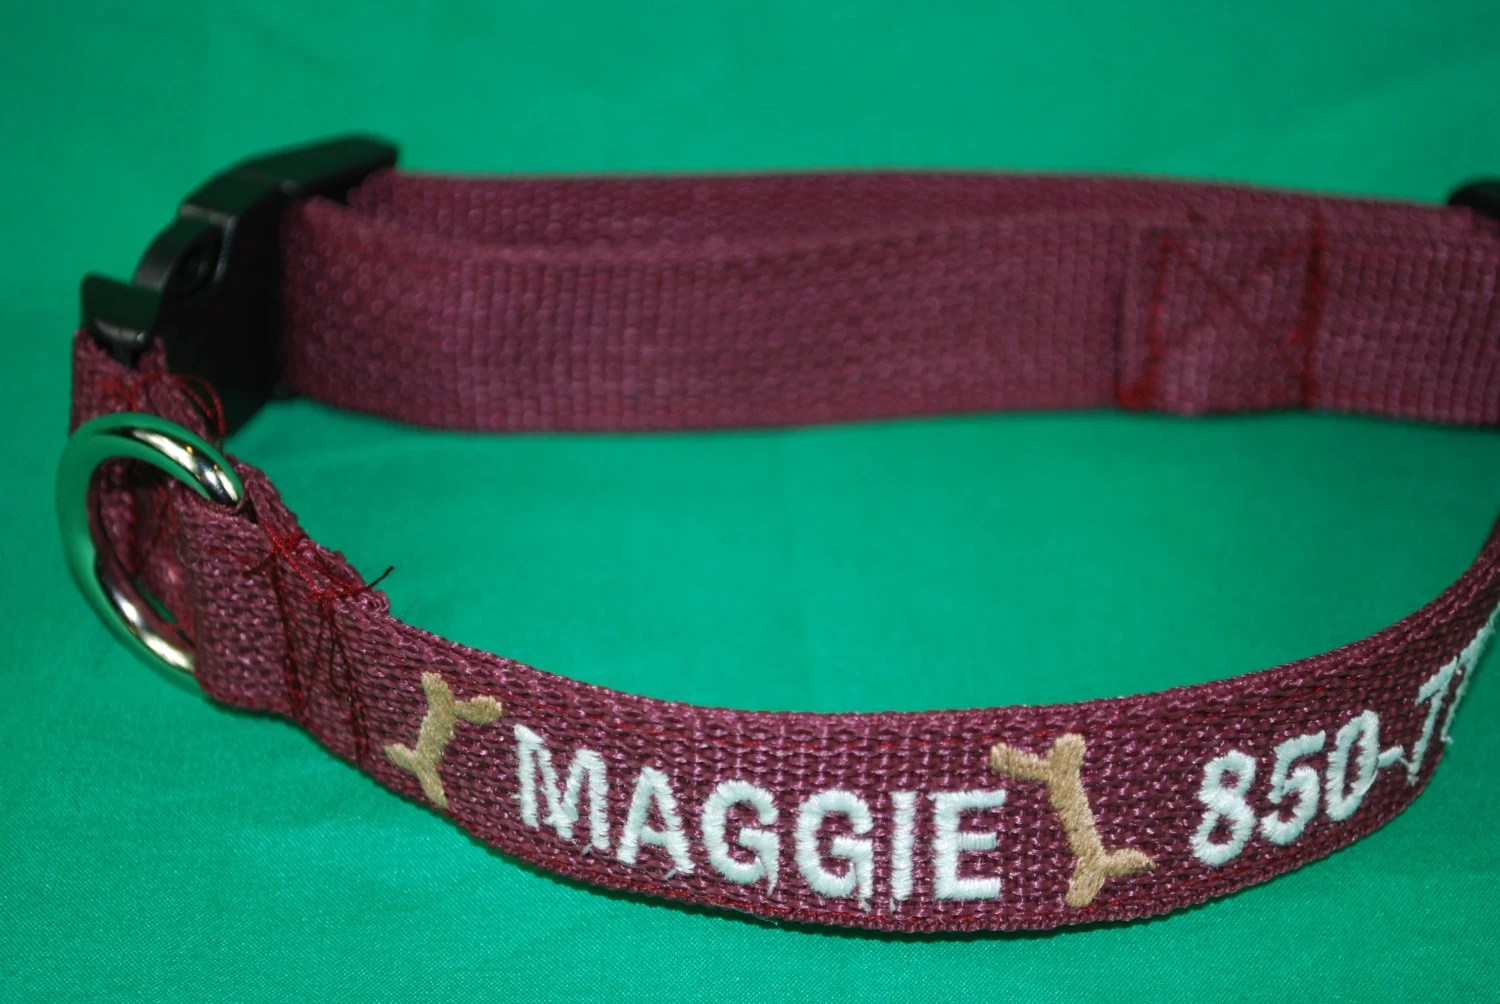 Personalized Dog Collar Dog Collar with Embroidered Name and image 7